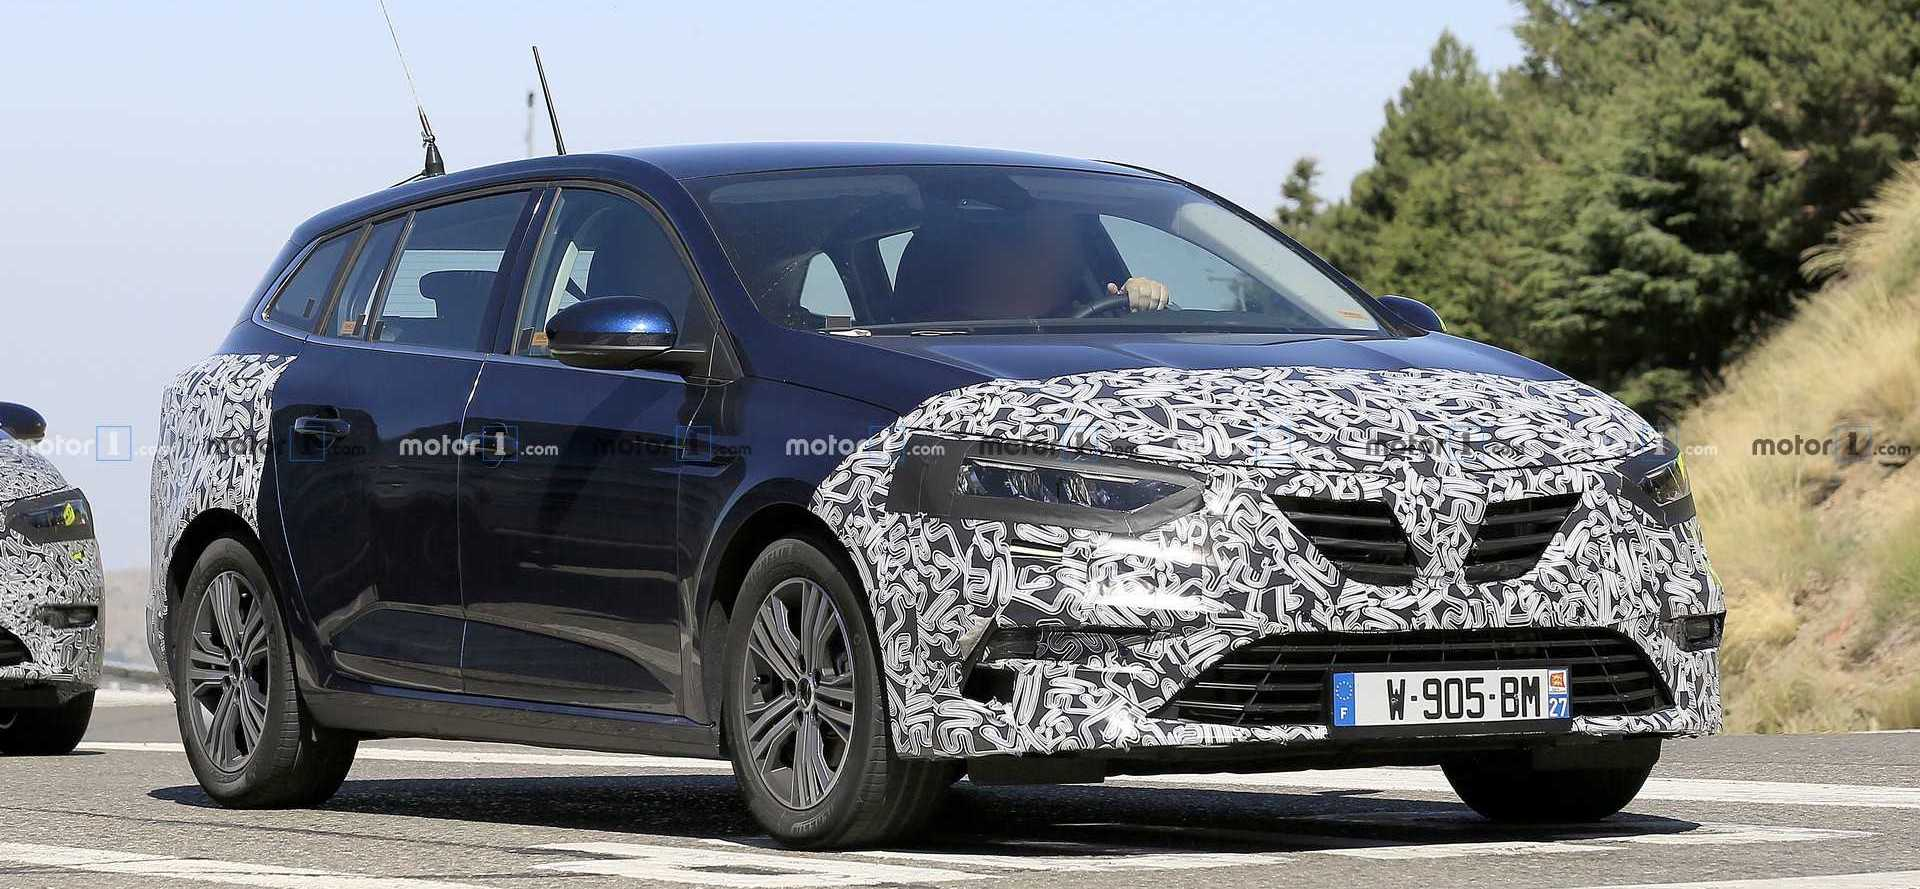 Renault Megane Wagon Facelift Caught With New Headlights, Taillights